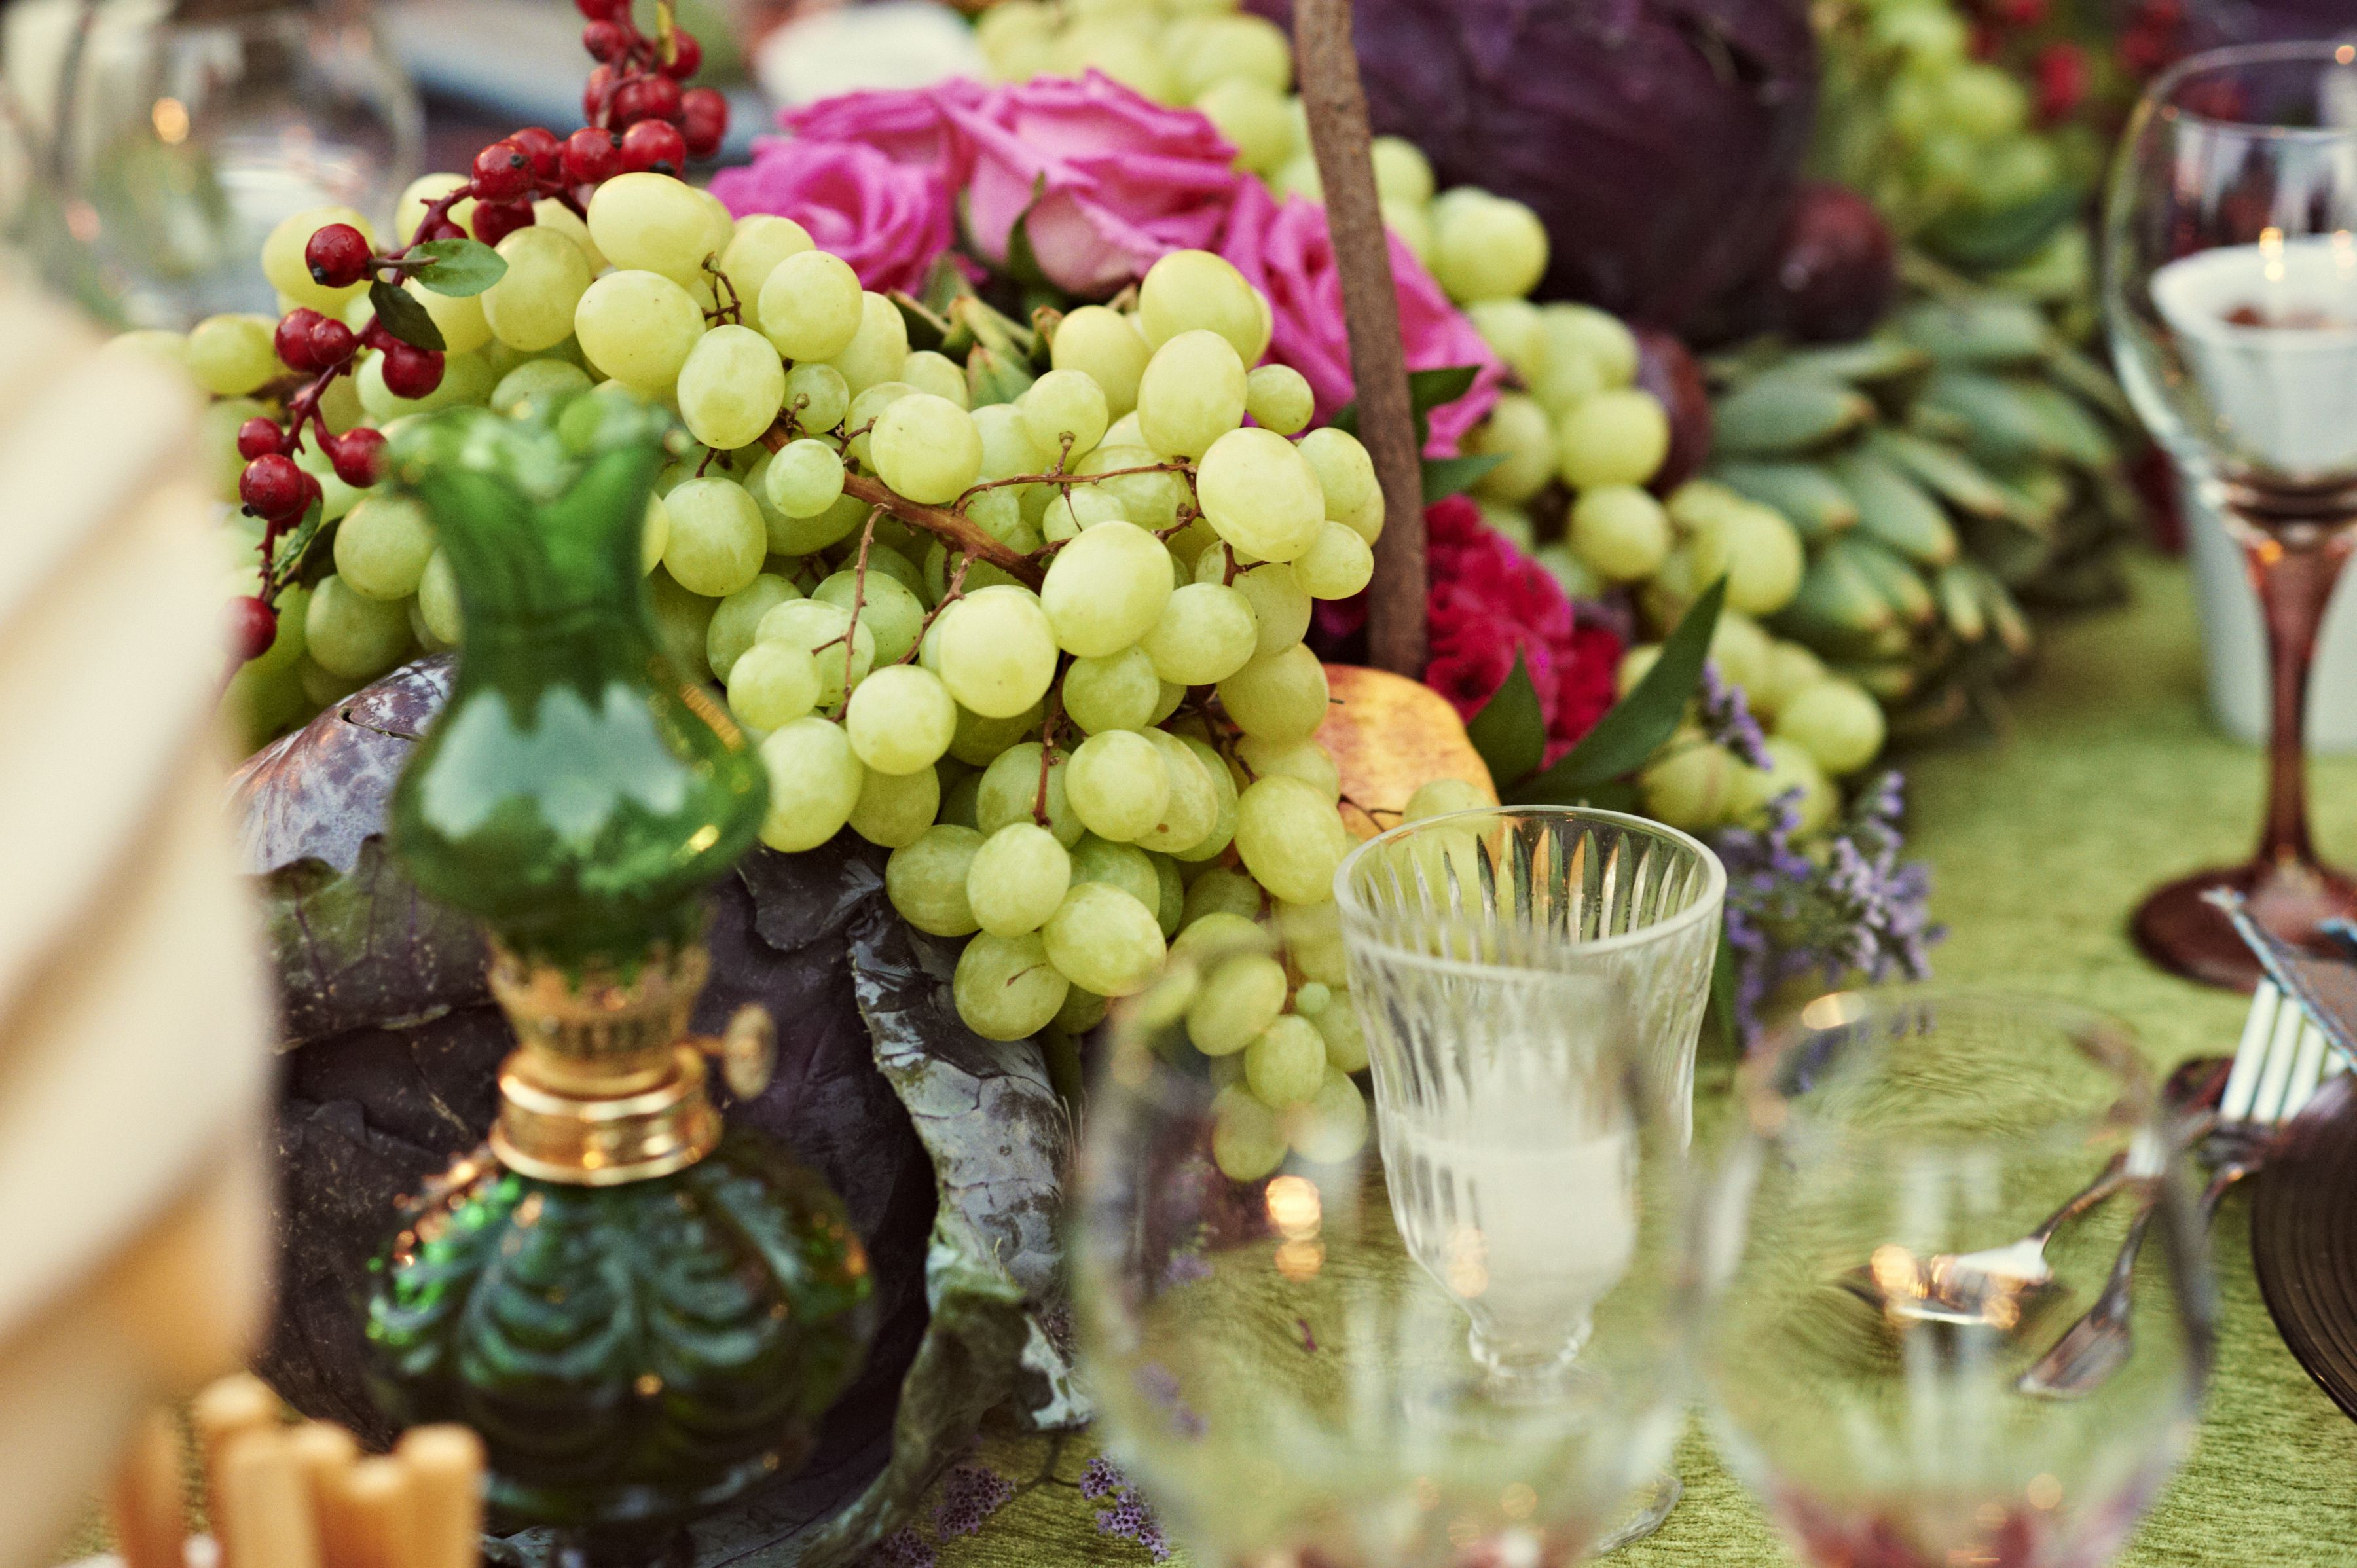 Exotic Garden Wedding Table decoration - Fruits and flowers | Leila ...